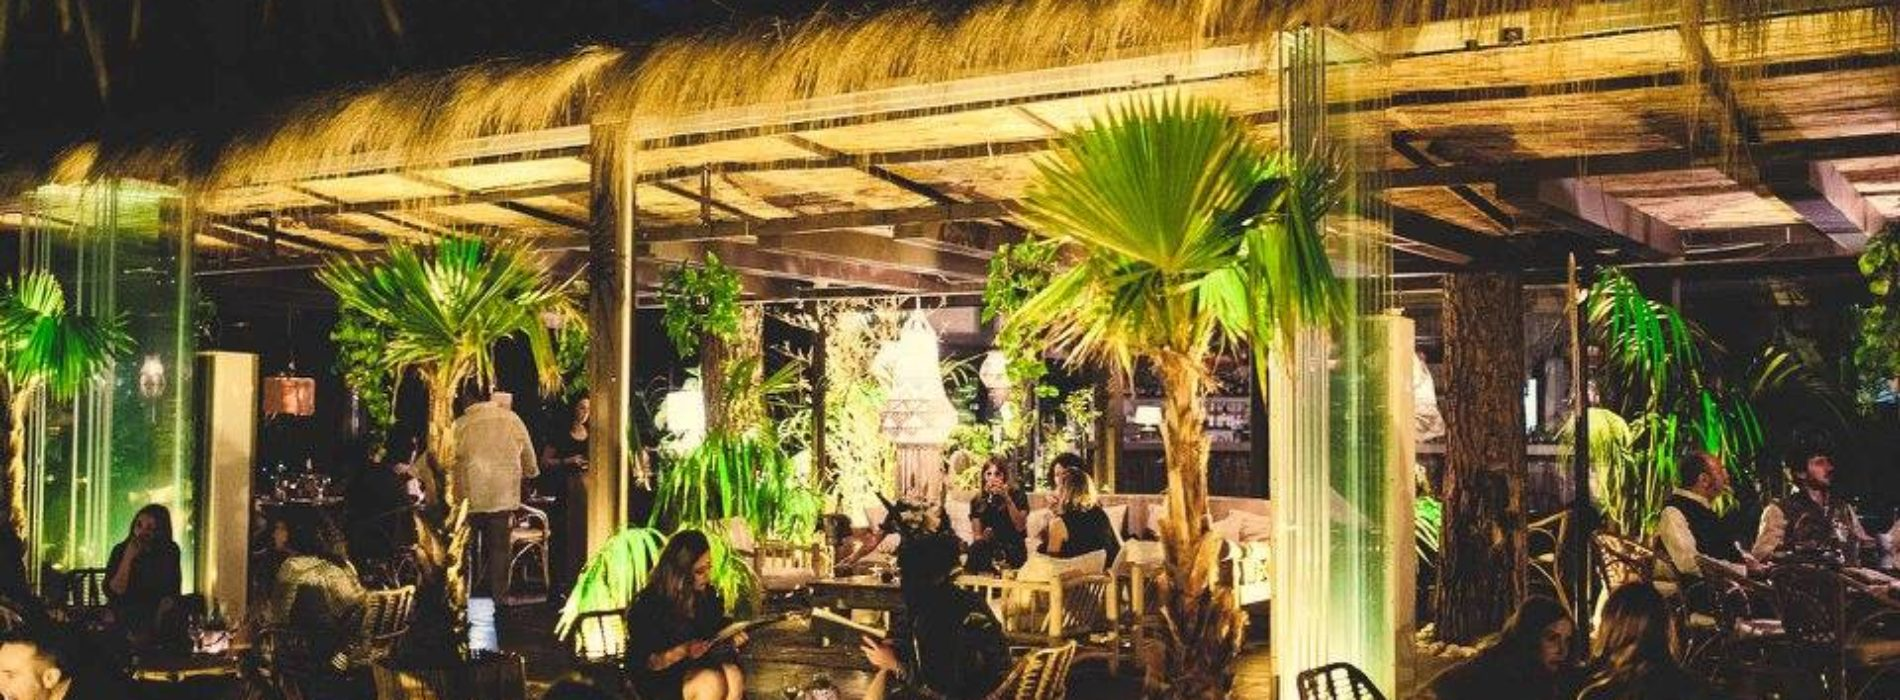 Outdoor bars in Rome summer 2018: the best terraces and gardens for aperitivo and dinner